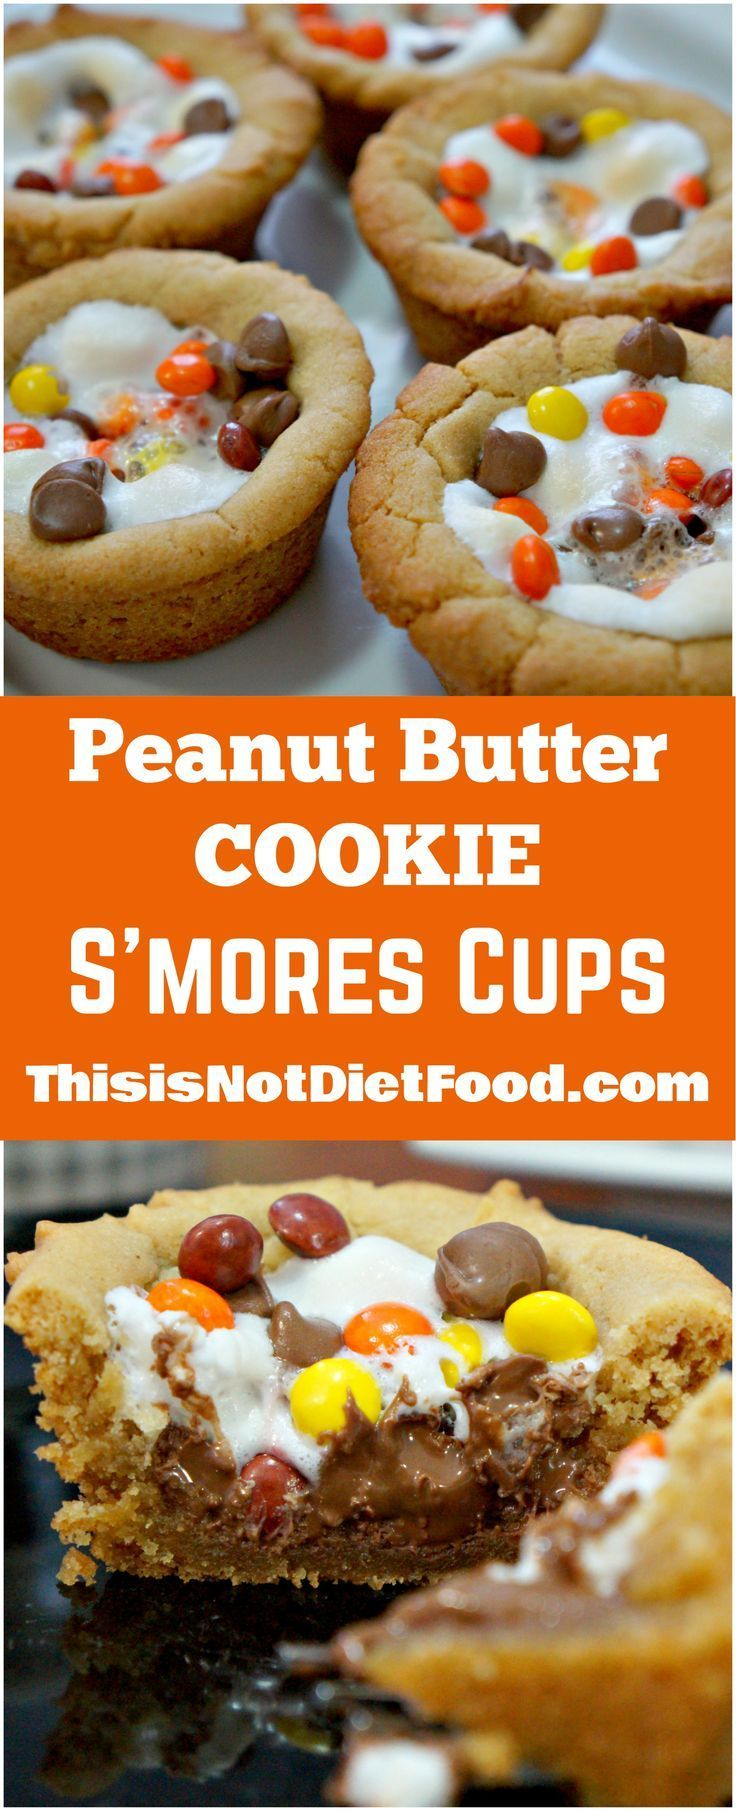 Peanut Butter Cookie S'Mores Cups. Yummy peanut butter cookie cups filled with chocolate chips, marshmallows and mini Reese's Pieces.